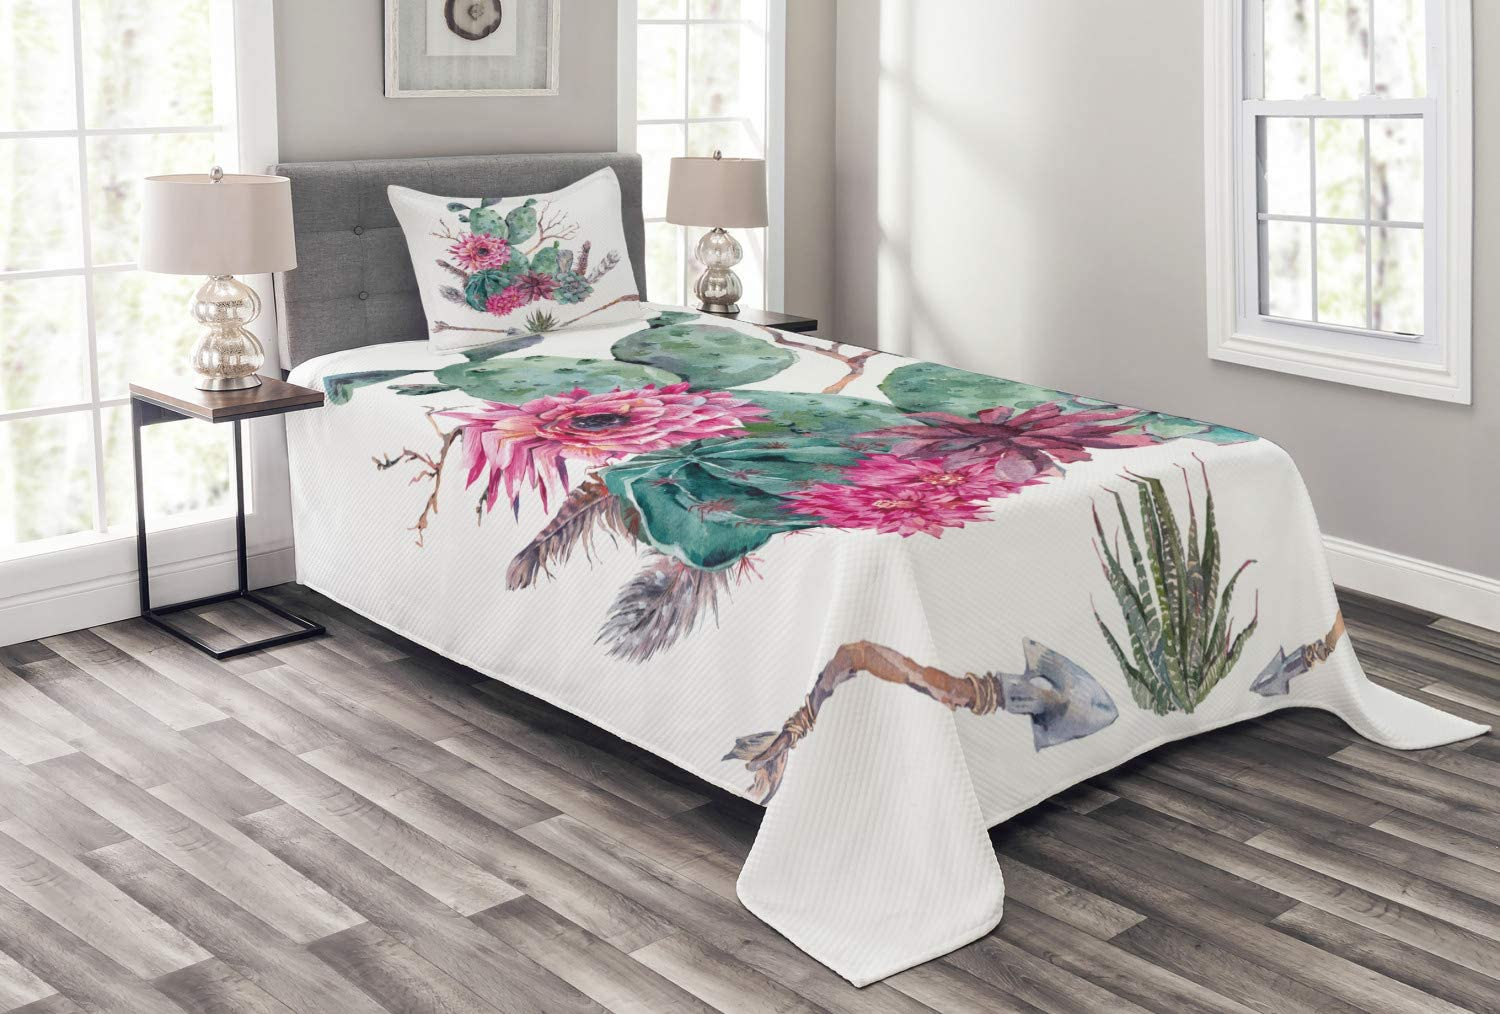 Ambesonne Cactus Bedspread, Exotic Natural Vintage Style Watercolor Bouquet Bohemian Arizona Vegetation, Decorative Quilted 2 Piece Coverlet Set with Pillow Sham, Twin Size, Green Pink